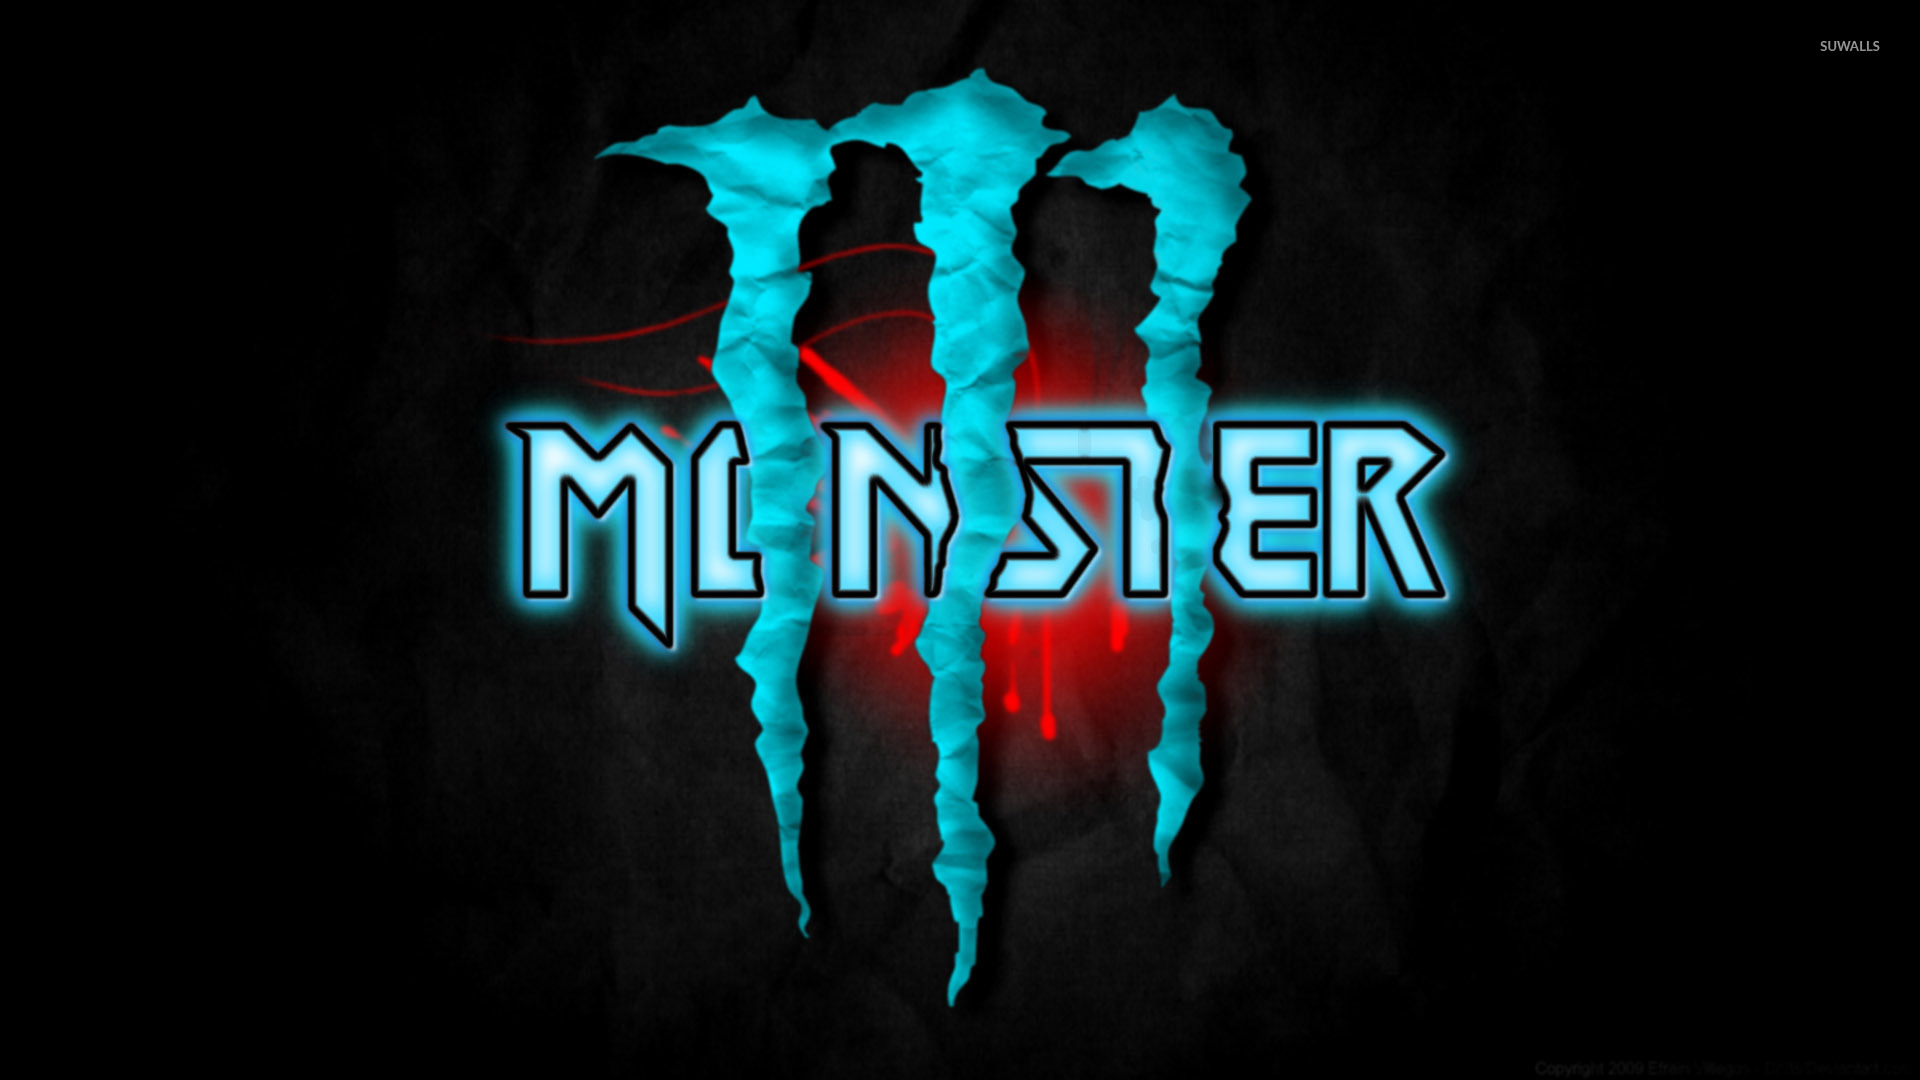 Monster Energy Wallpaper Digital Art Wallpapers 32332